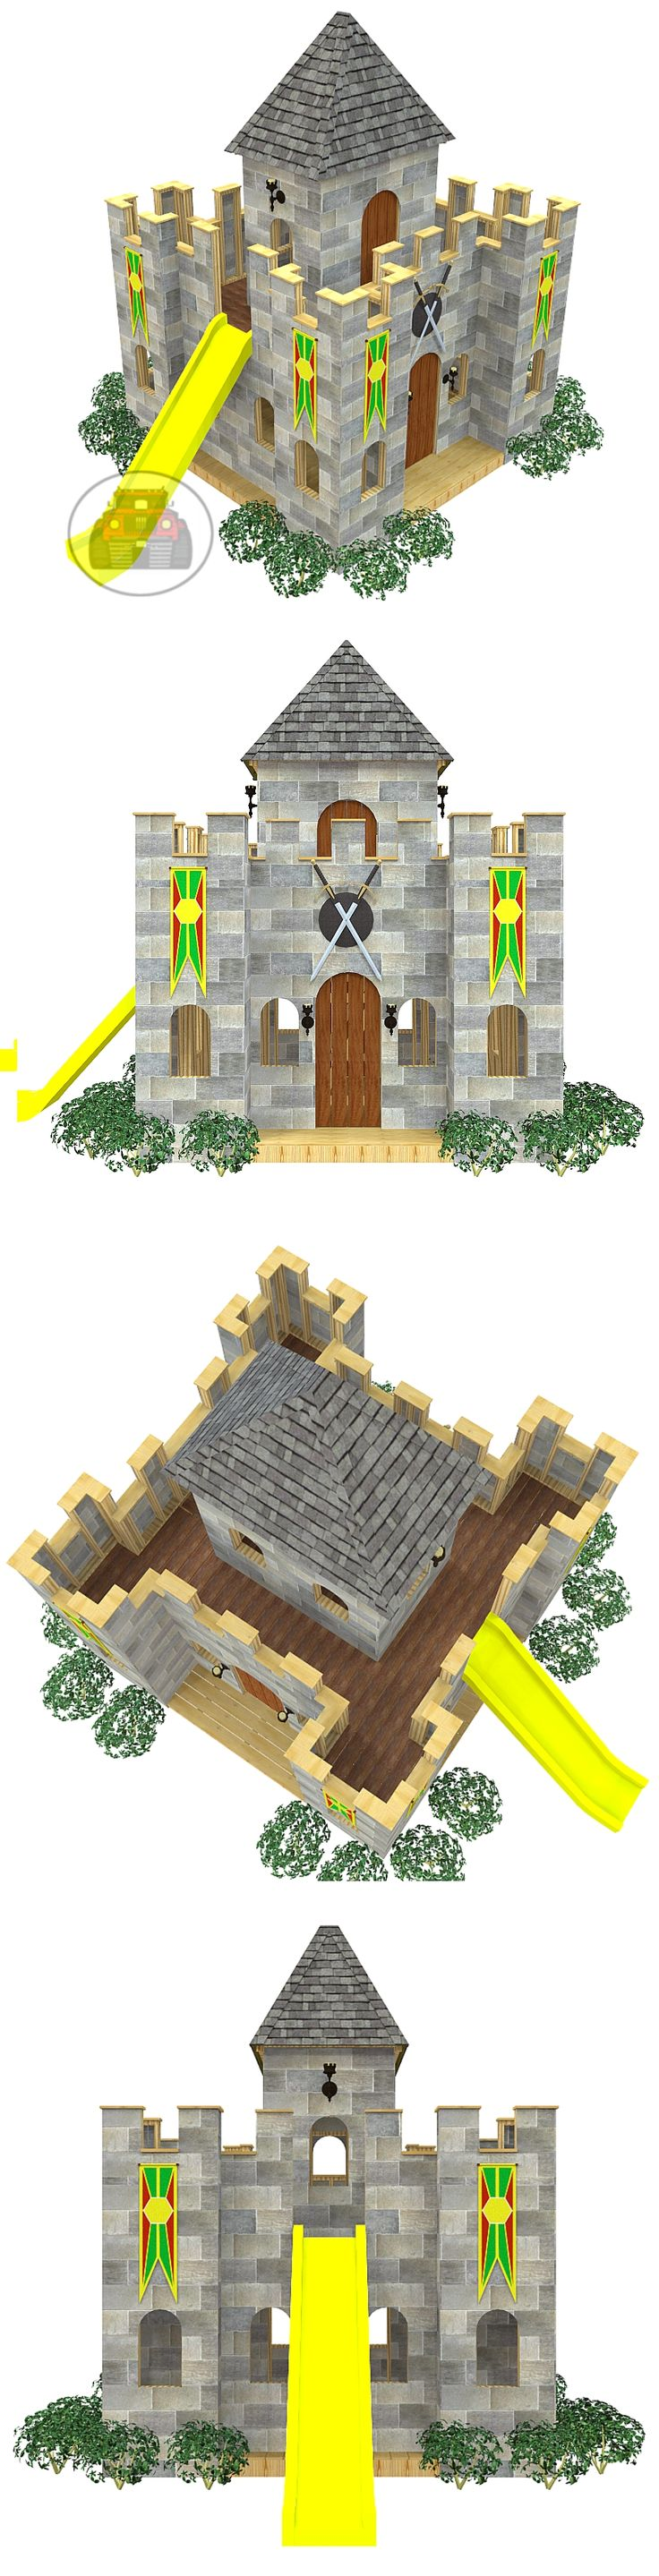 The castle playhouse plan, hosted on paulsplayhouses.com